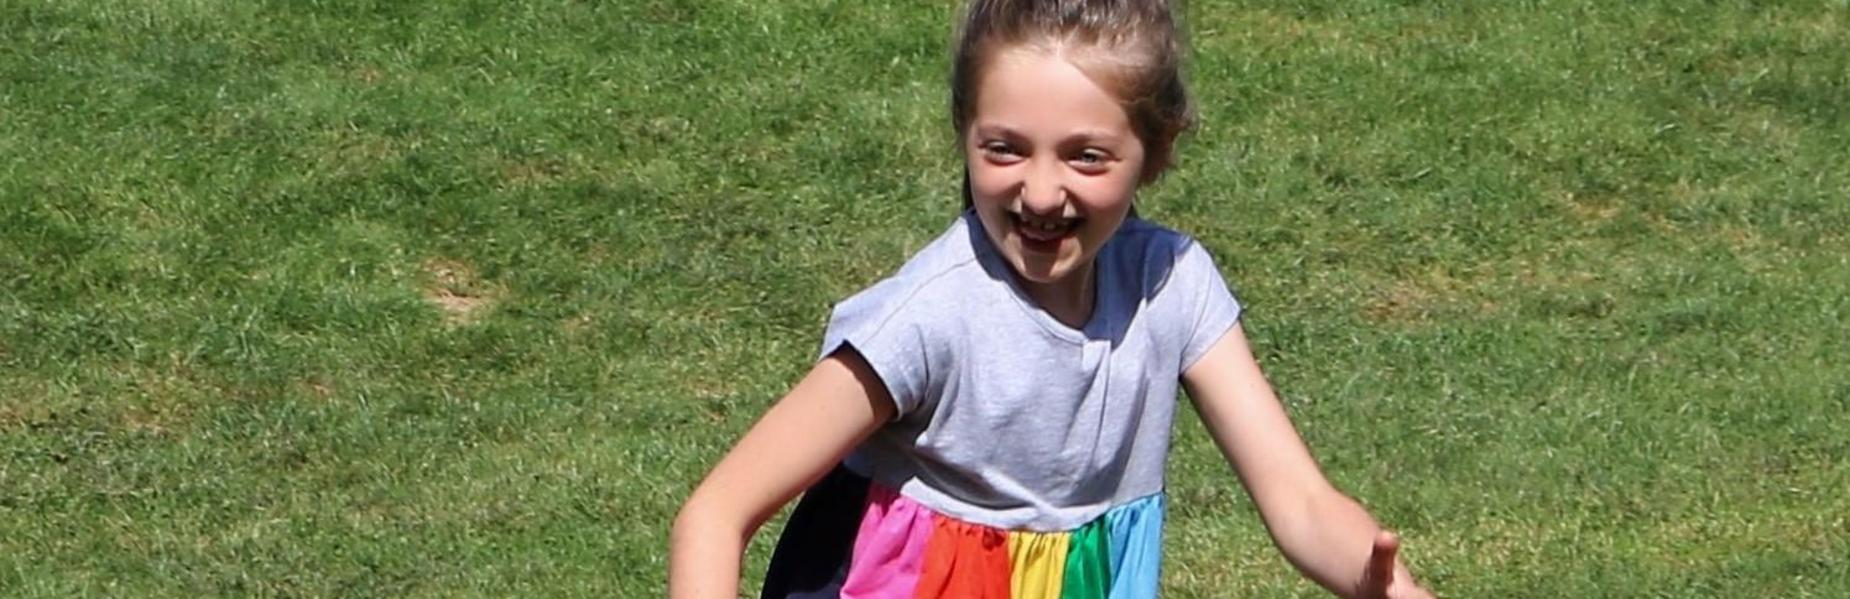 Photo of student running and smiling during recess